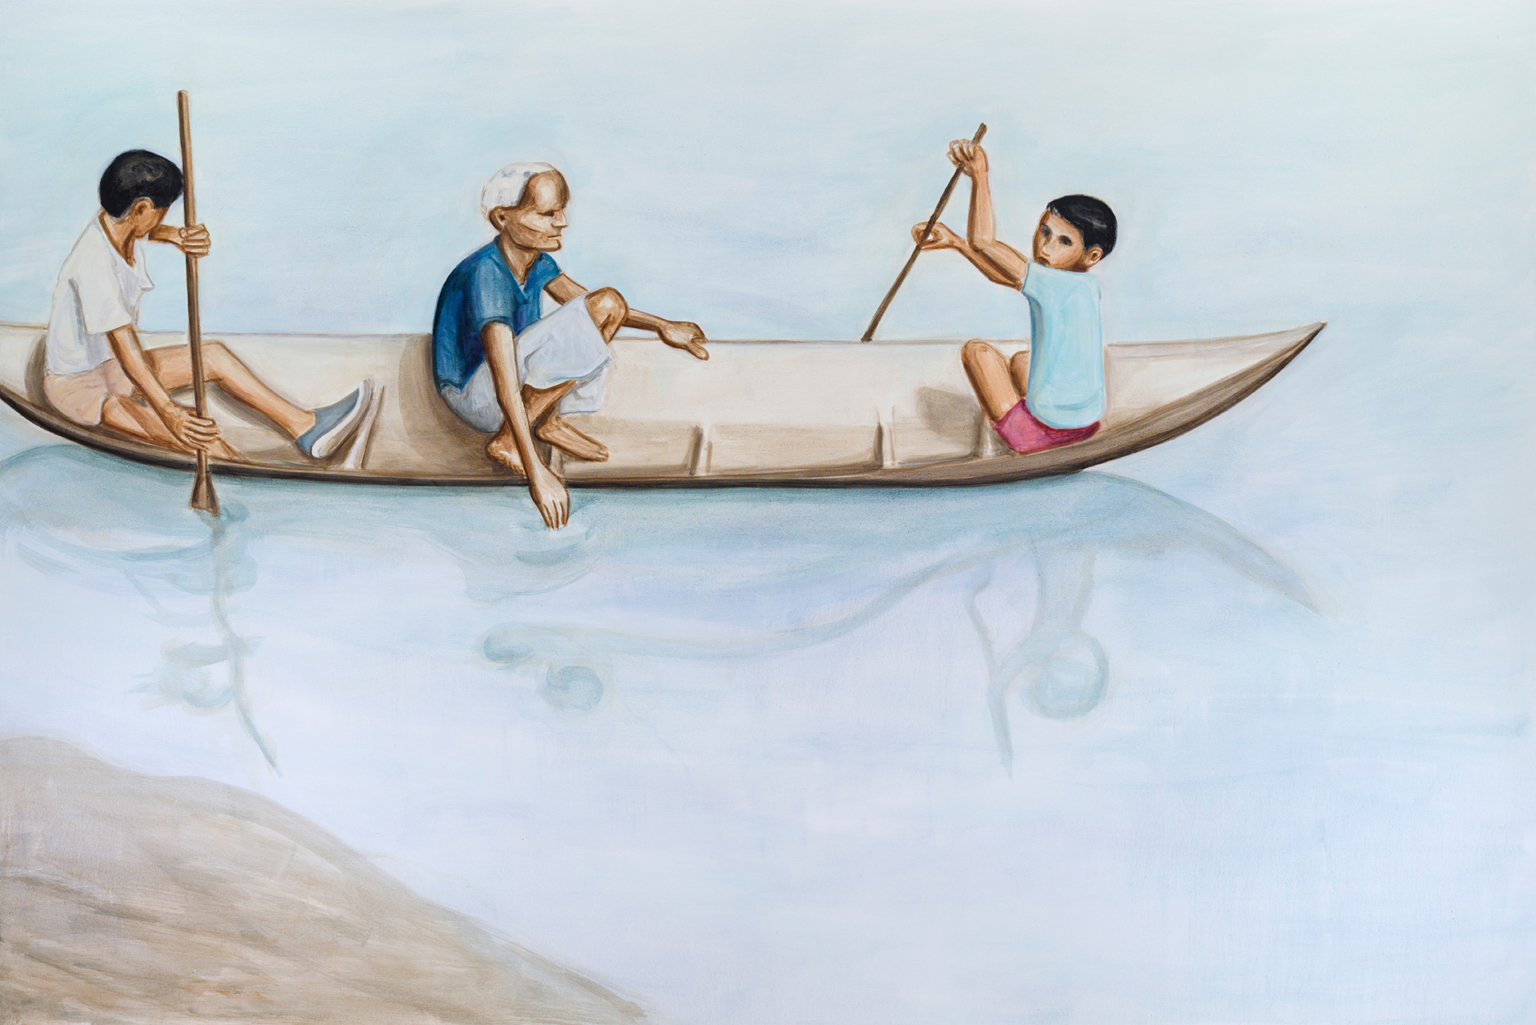 Boat, 2018, oil on canvas 200 x 300cm (photo: Peter Mallet)